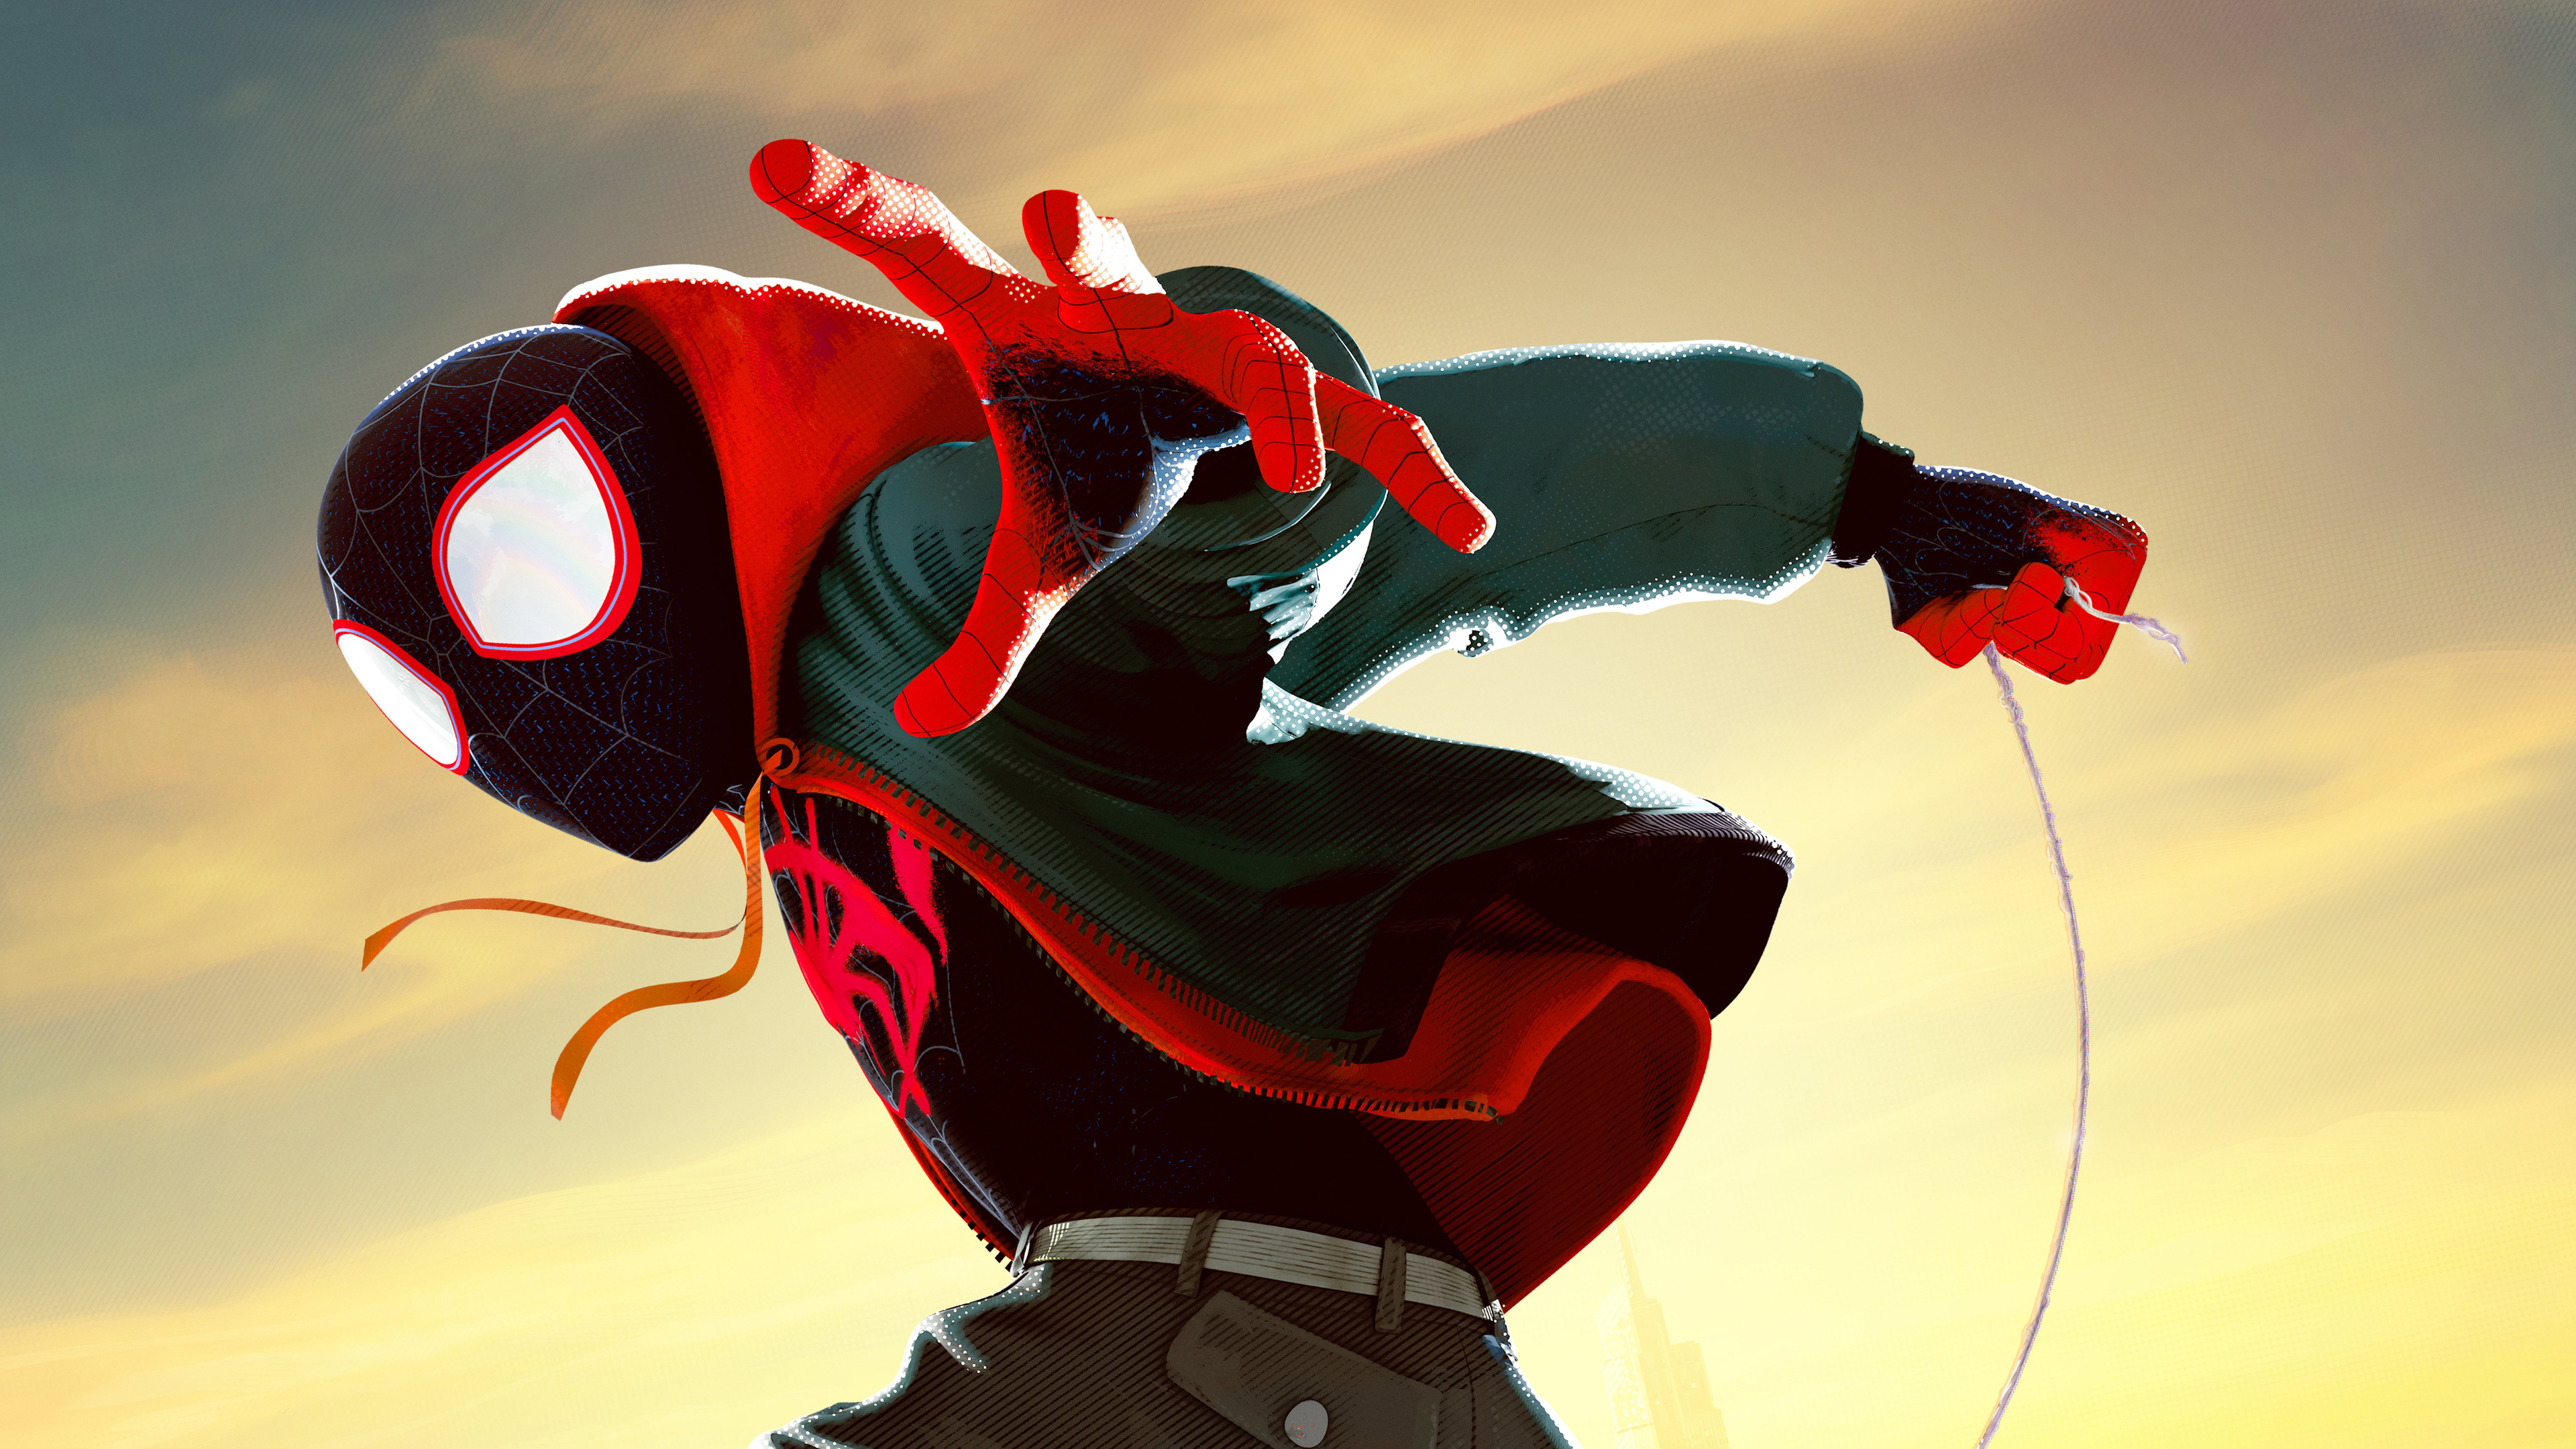 Into The Spider Verse X Wallpaper Iwallpaper: 3840x2160 Miles Morales In Spider Man Into The Spider